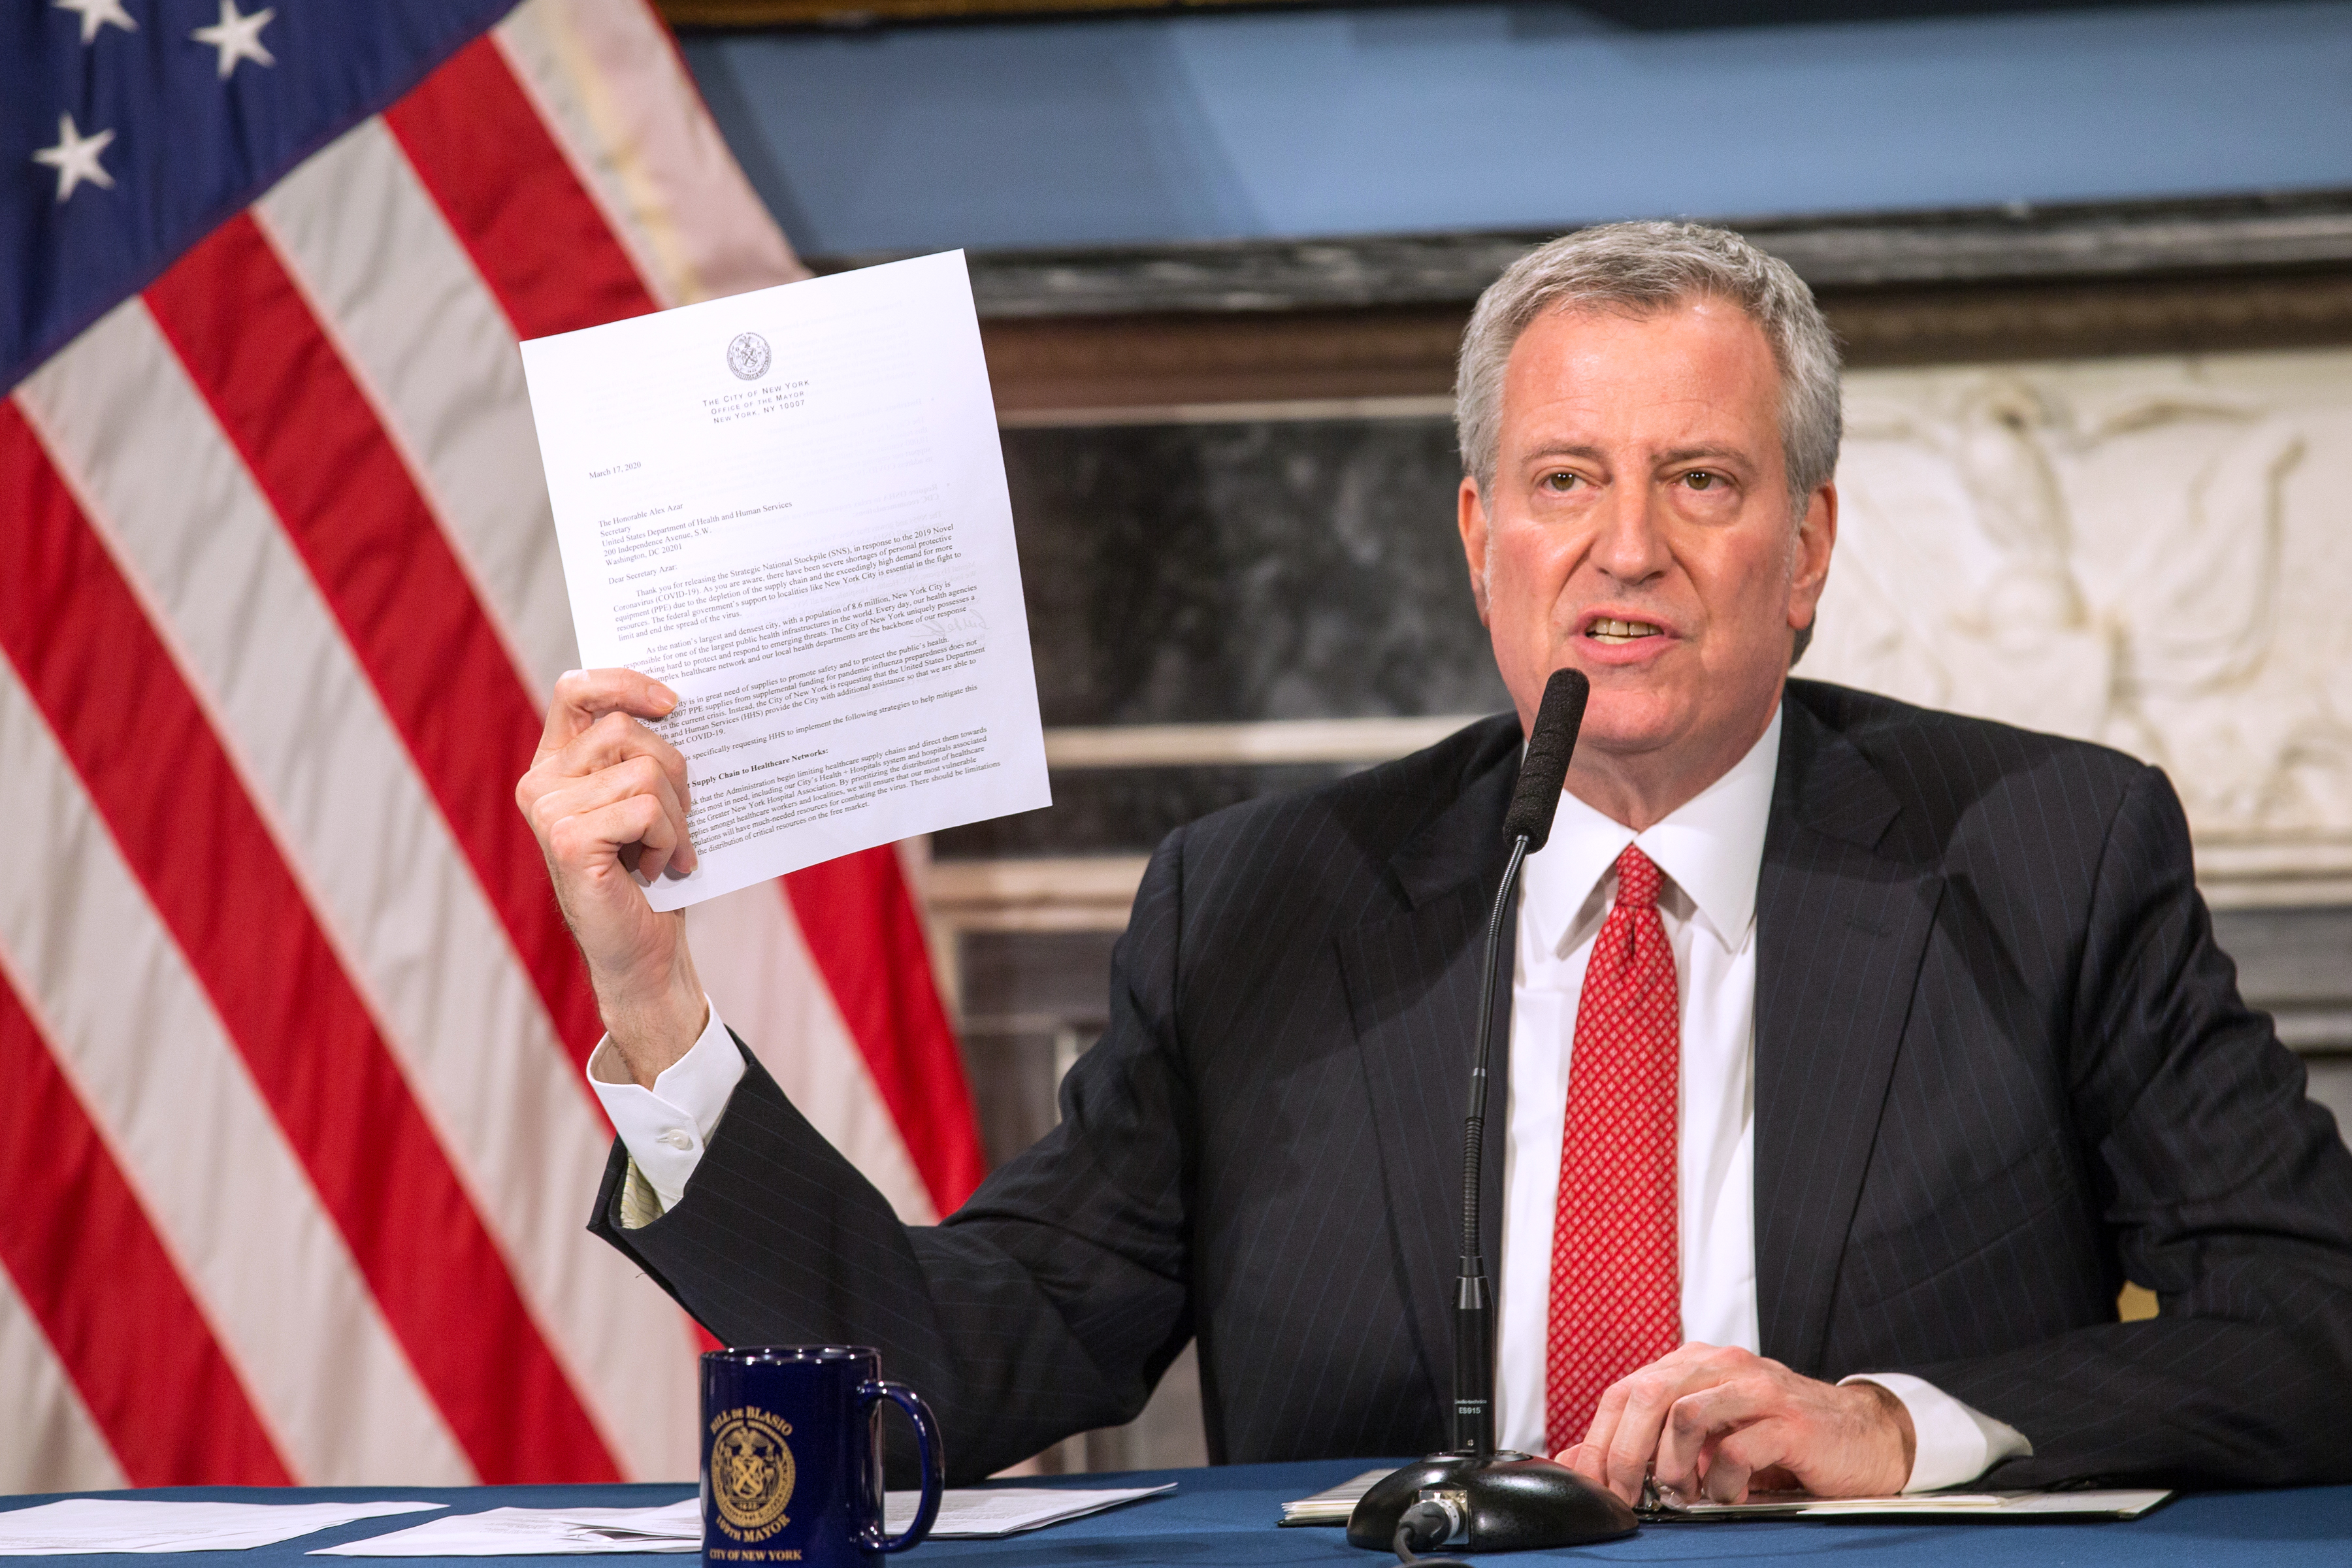 Mayor Bill De Blasio speaks during a video press conference on the city's response to the coronavirus (COVID-19) outbreak held at City Hall. (William Farrington-Pool/Getty Images)